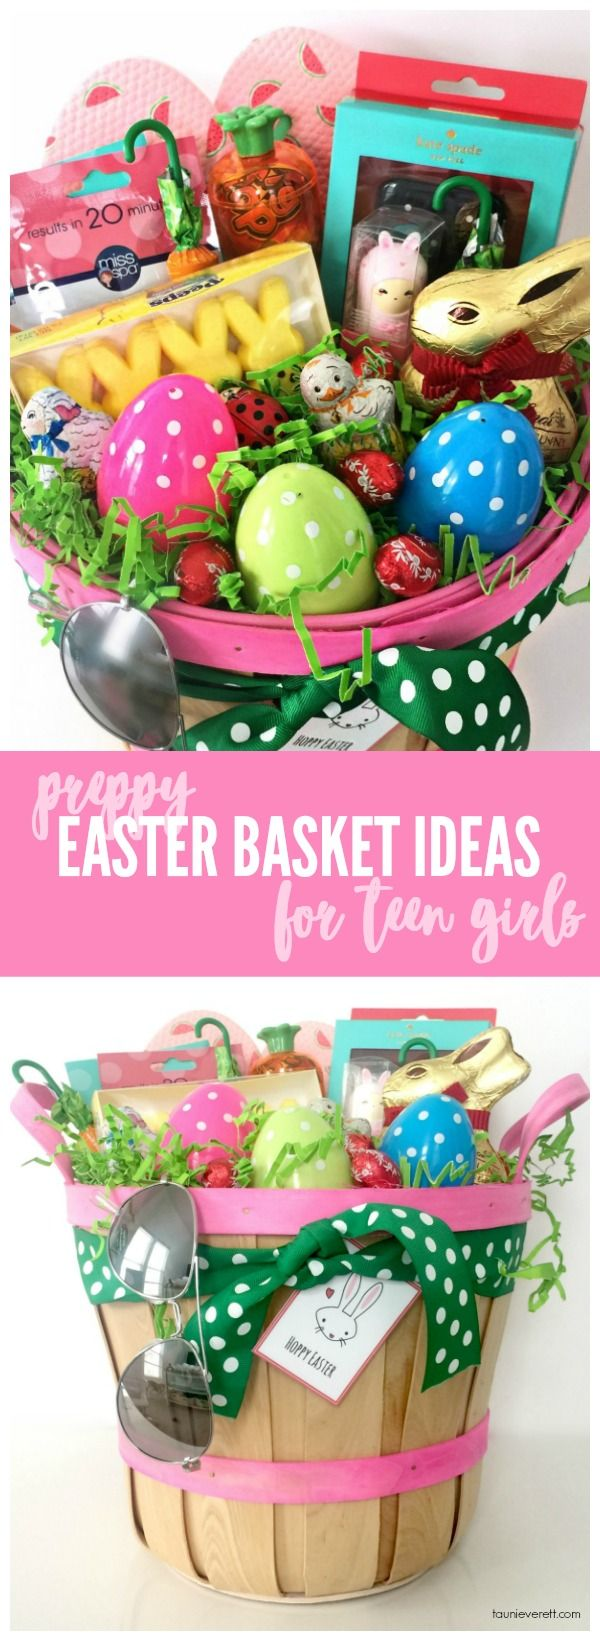 Easter basket ideas for teen girls basket ideas easter baskets easter basket ideas for teen girls negle Choice Image